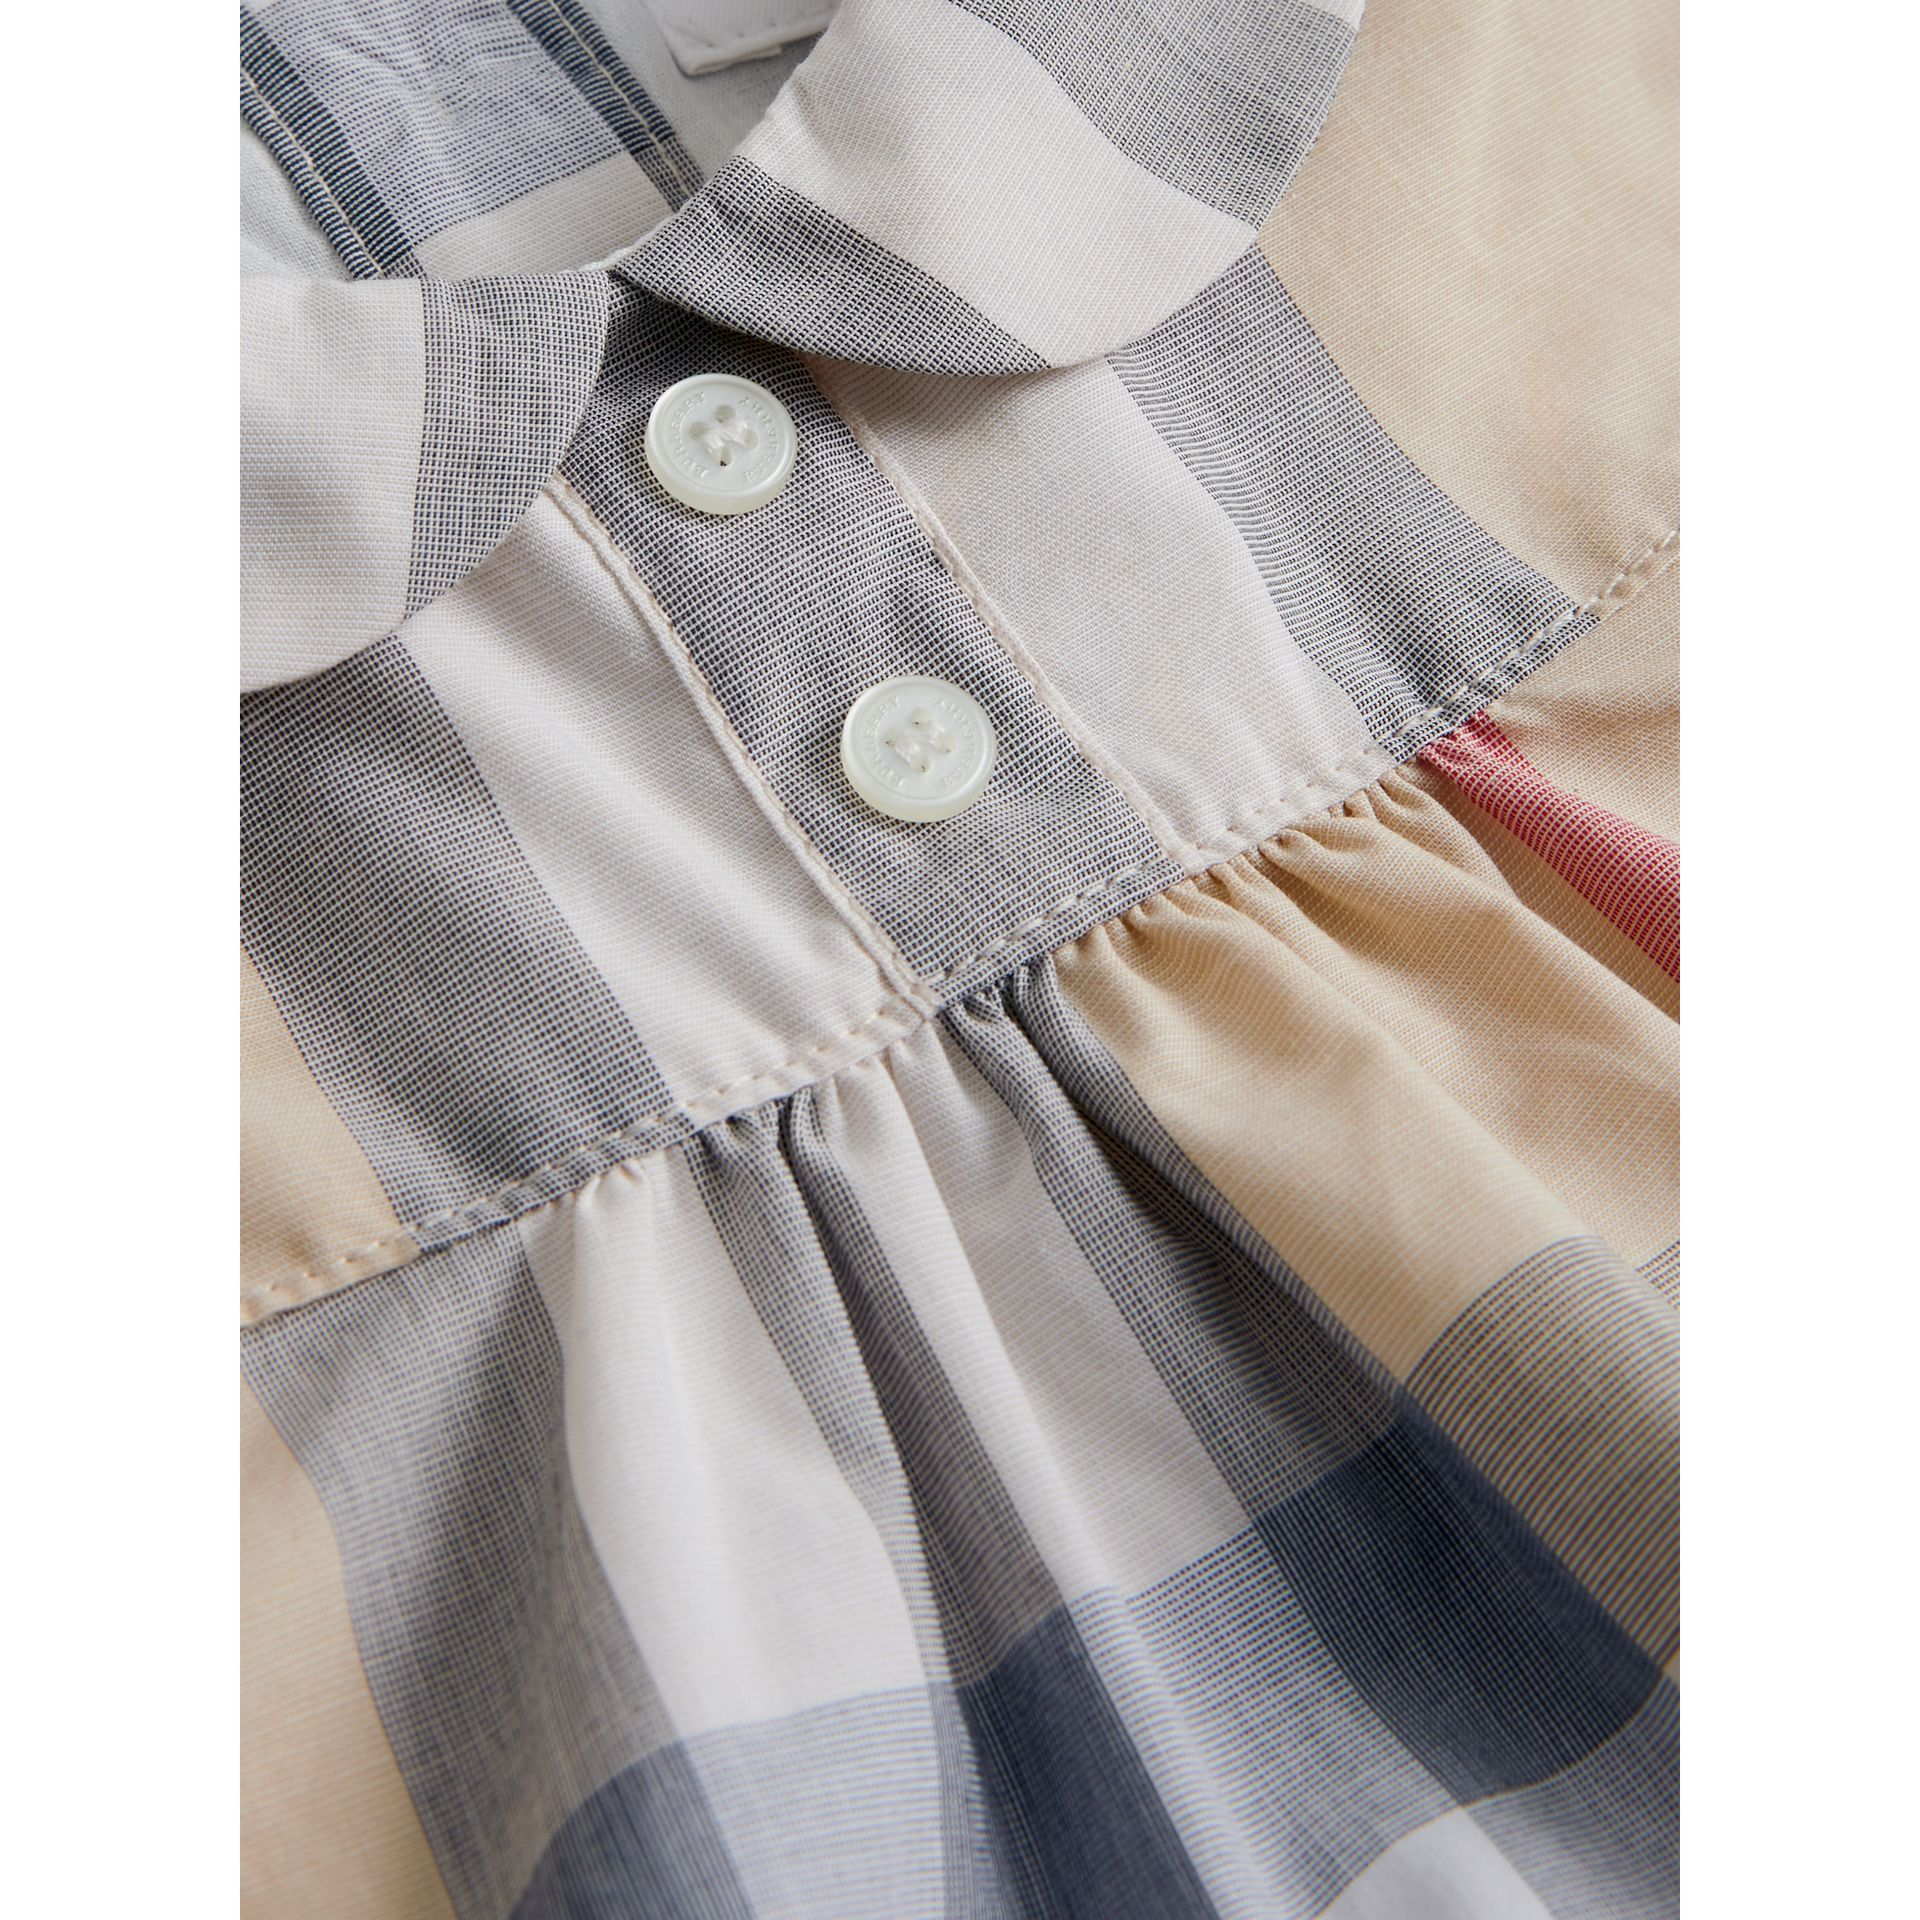 Robe en coton en check délavé (Classic  Pâle) - Fille | Burberry - photo de la galerie 2